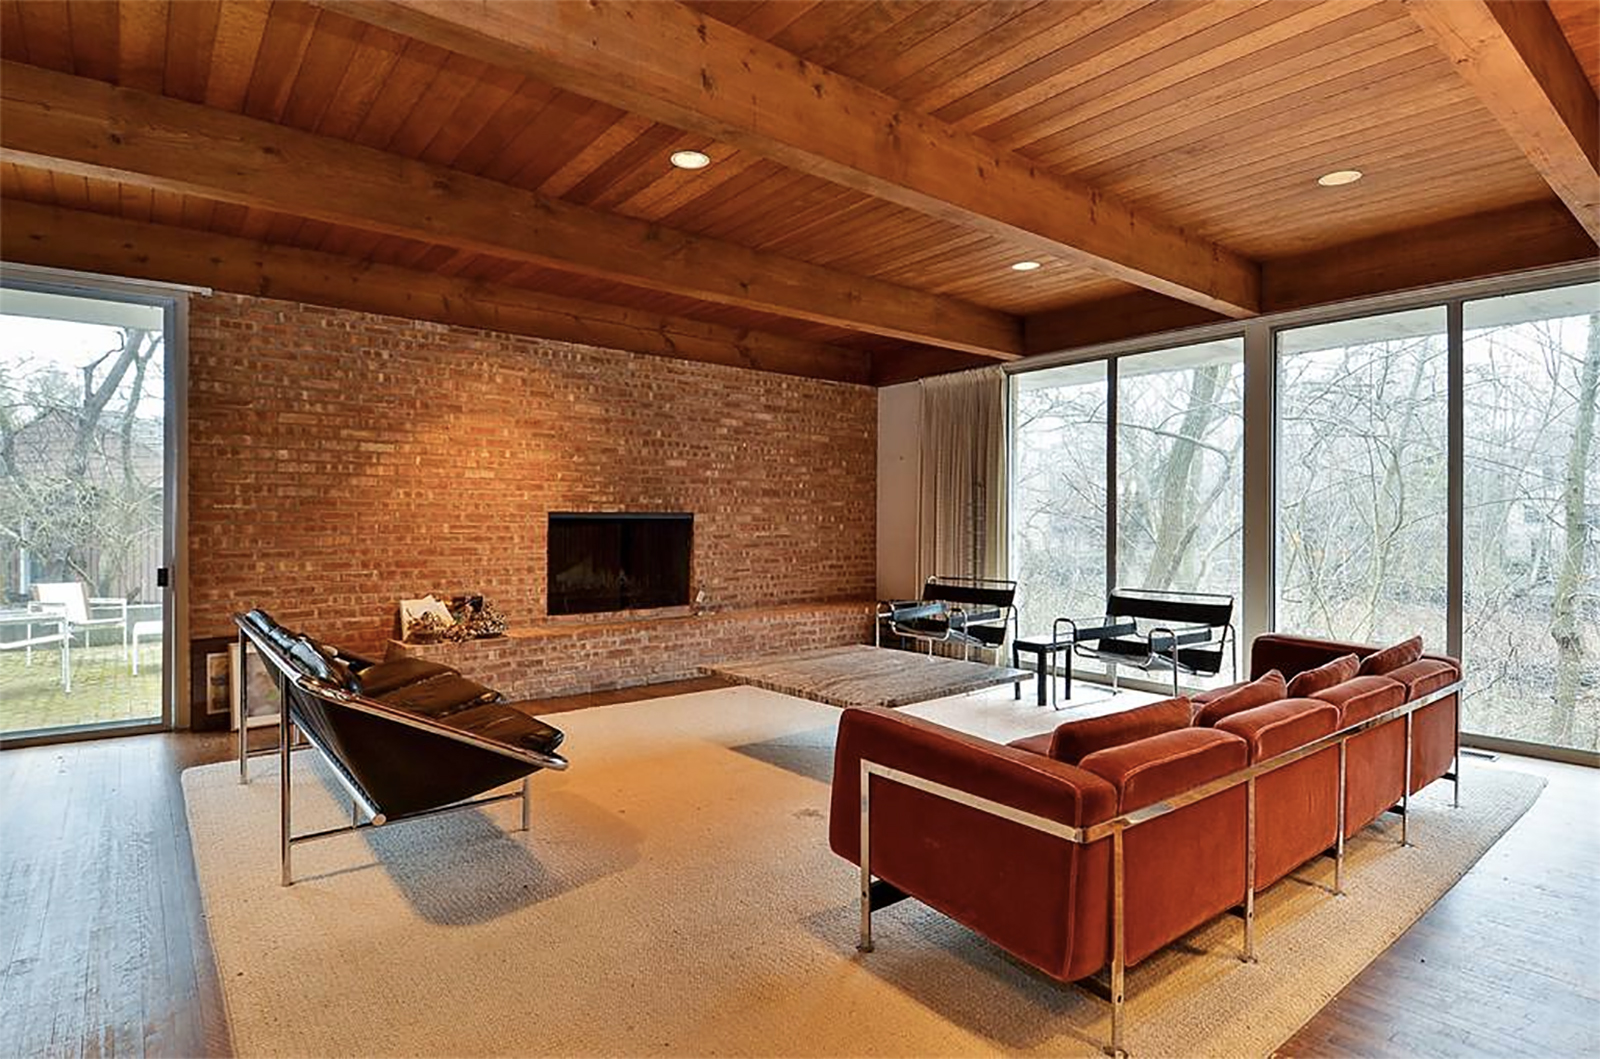 7 of the best midcentury homes for sale in the us for Modern homes for sale chicago